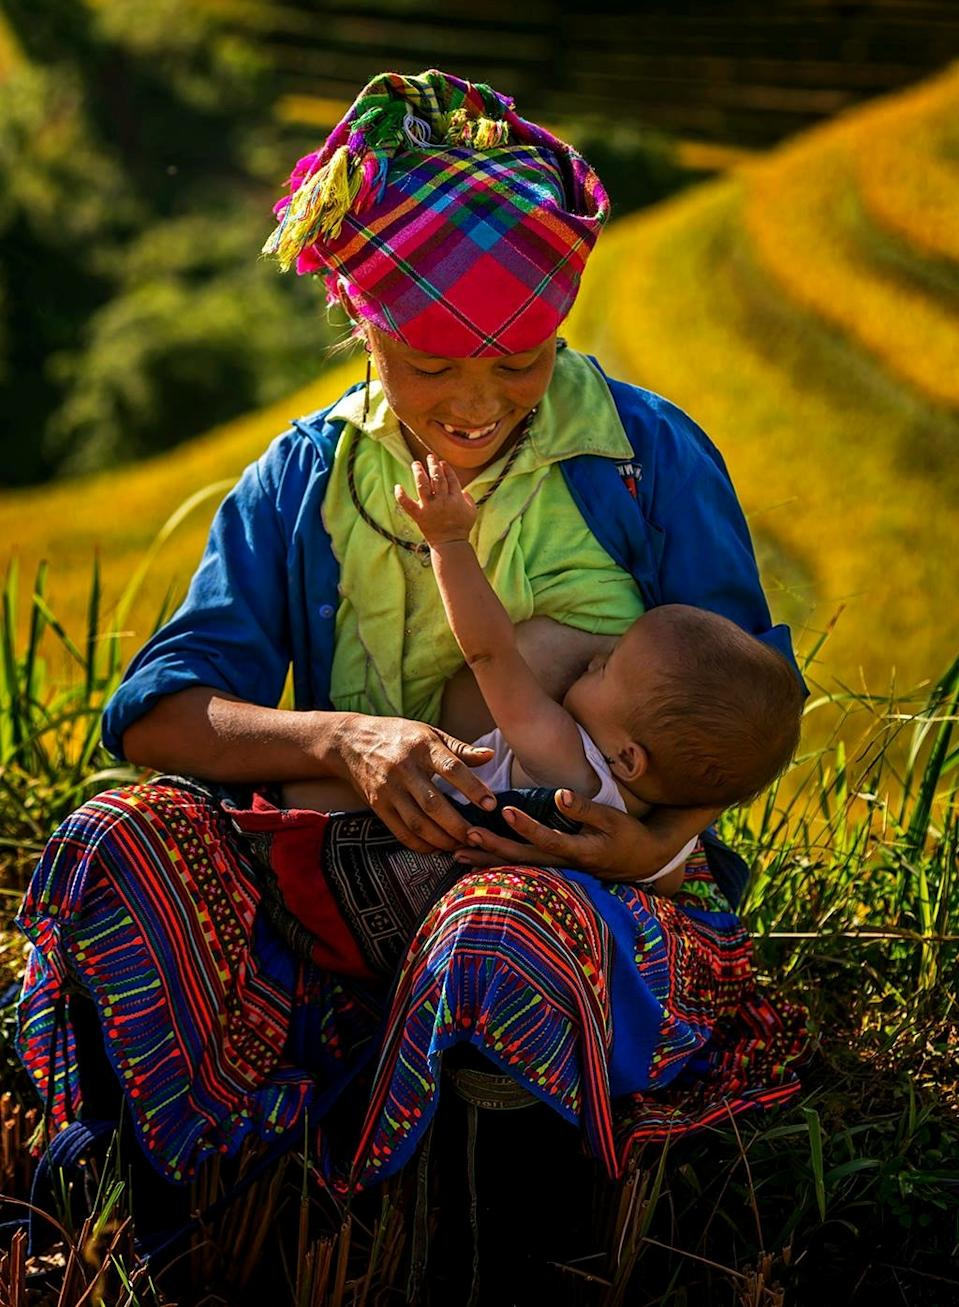 """Vietnamese photographer @Tuanngocphoto spotted this Hmong woman having a break to feed her child in Mu Cang Chai: """"Although they are working in the fields, the Hmong people still carry their children on their backs."""". [Photo: SWNS]"""